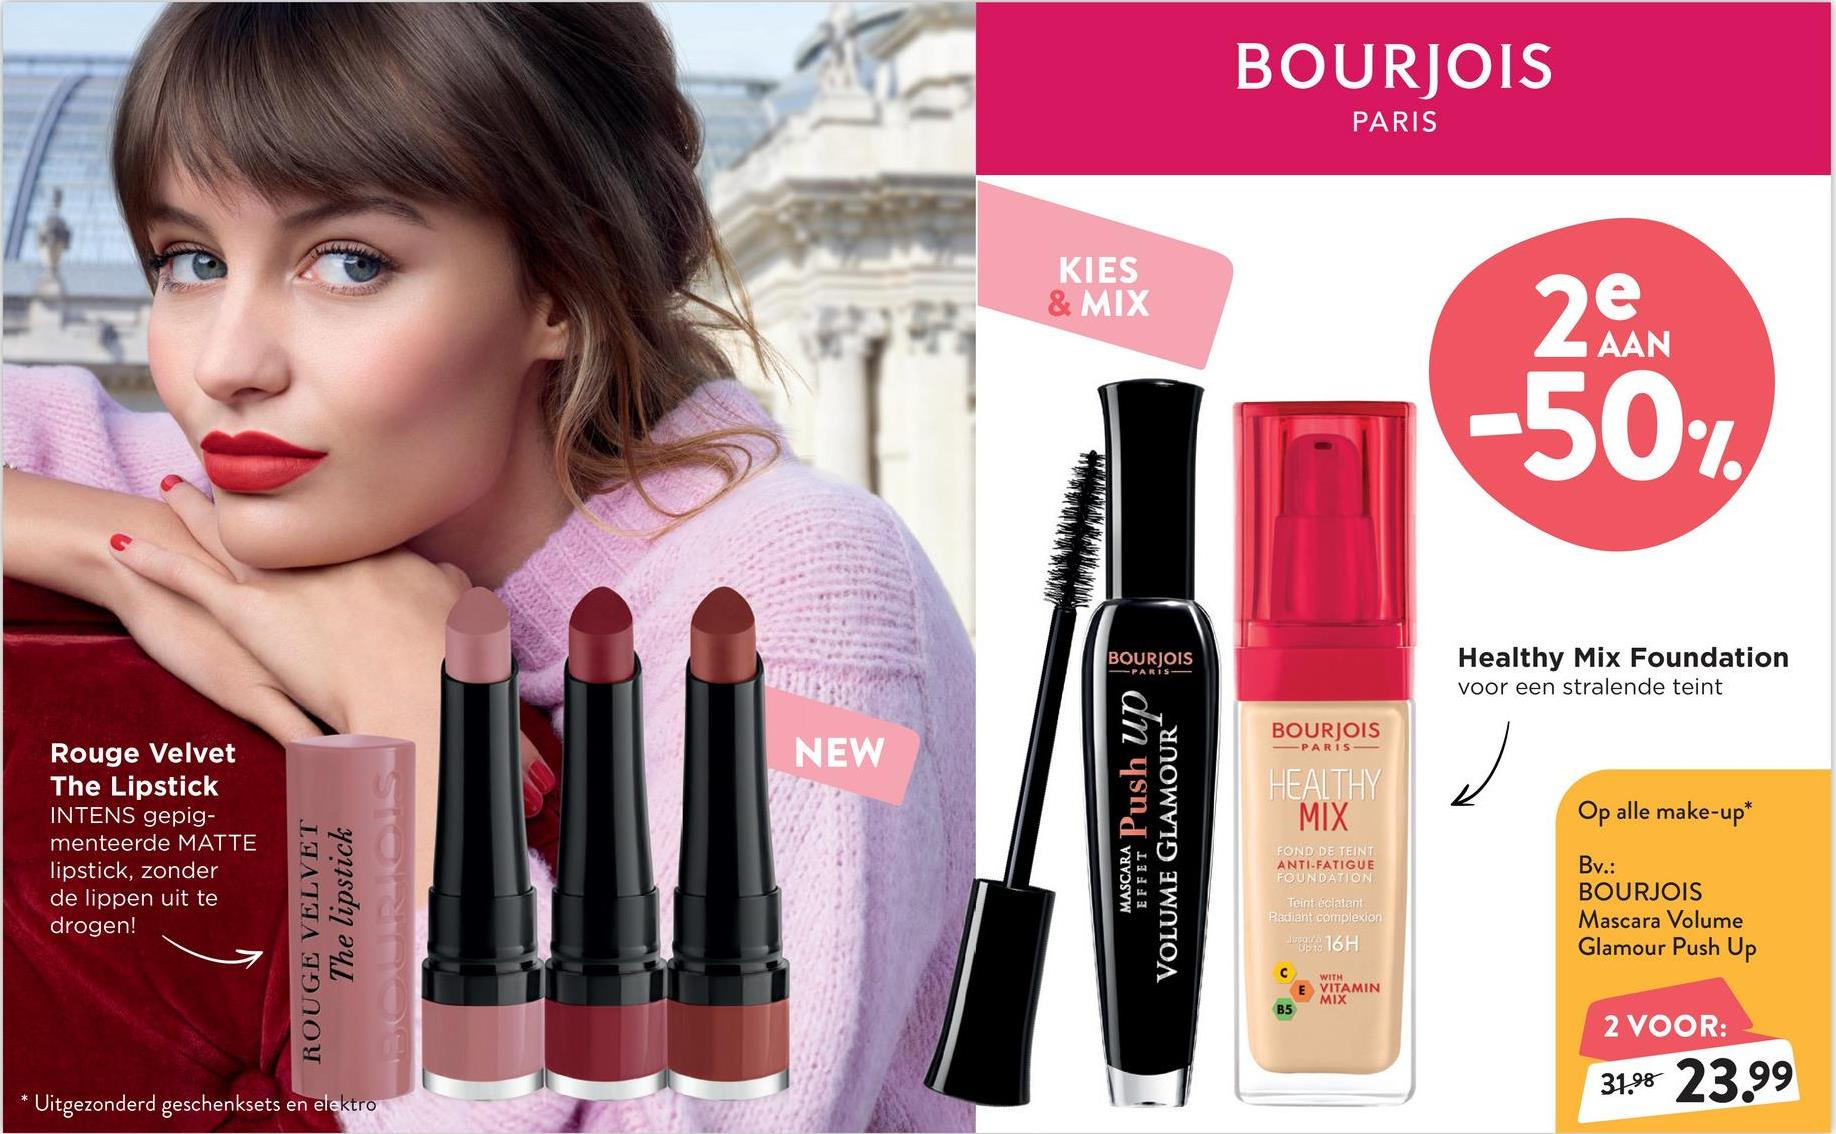 BOURJOIS Volume Glamour Push Up BOURJOIS Volume Glamour Push Up